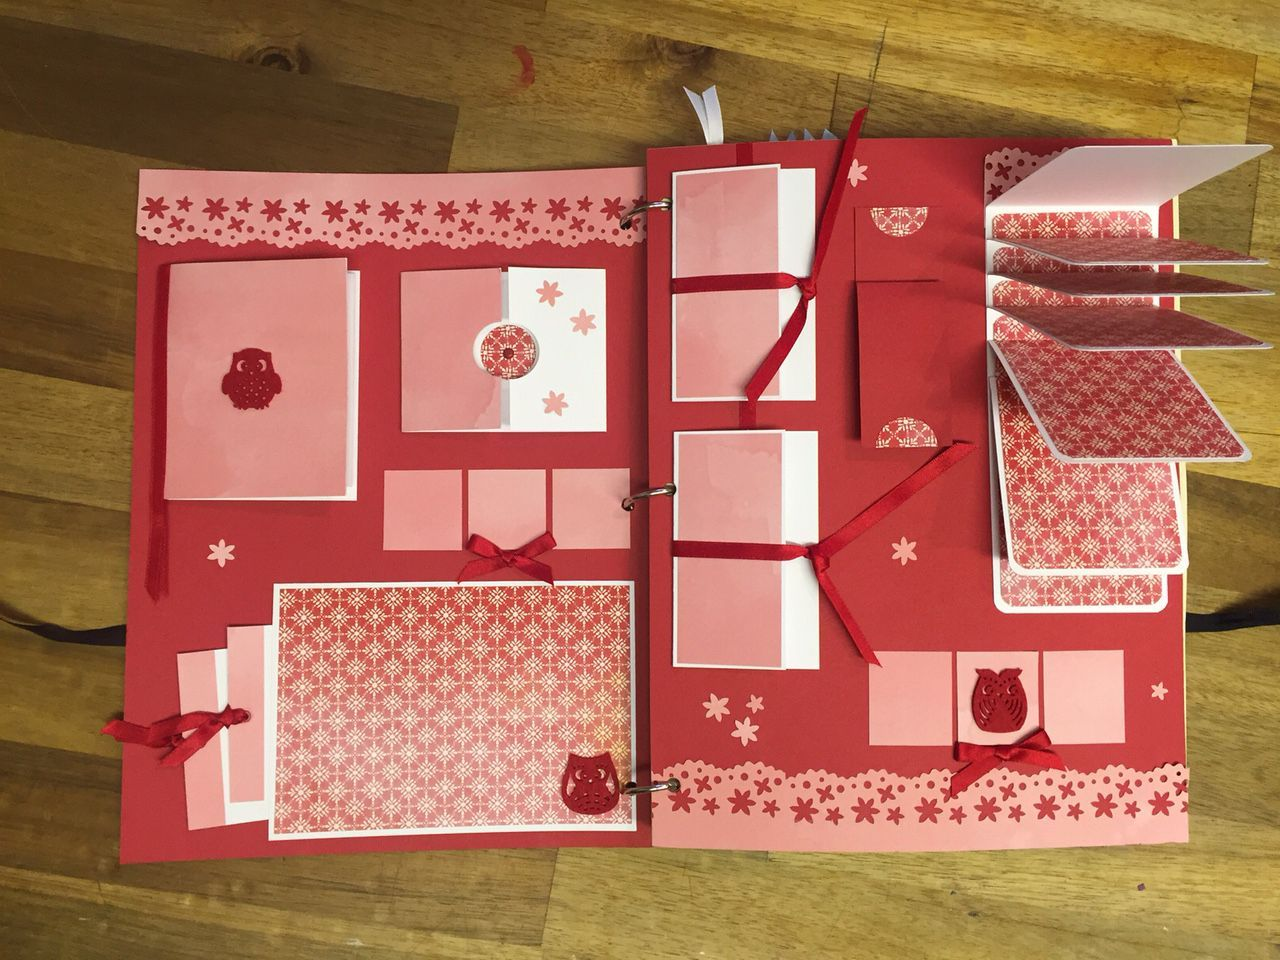 25 Creative Photo of Diy Scrapbook For Boyfriend #scrapbook